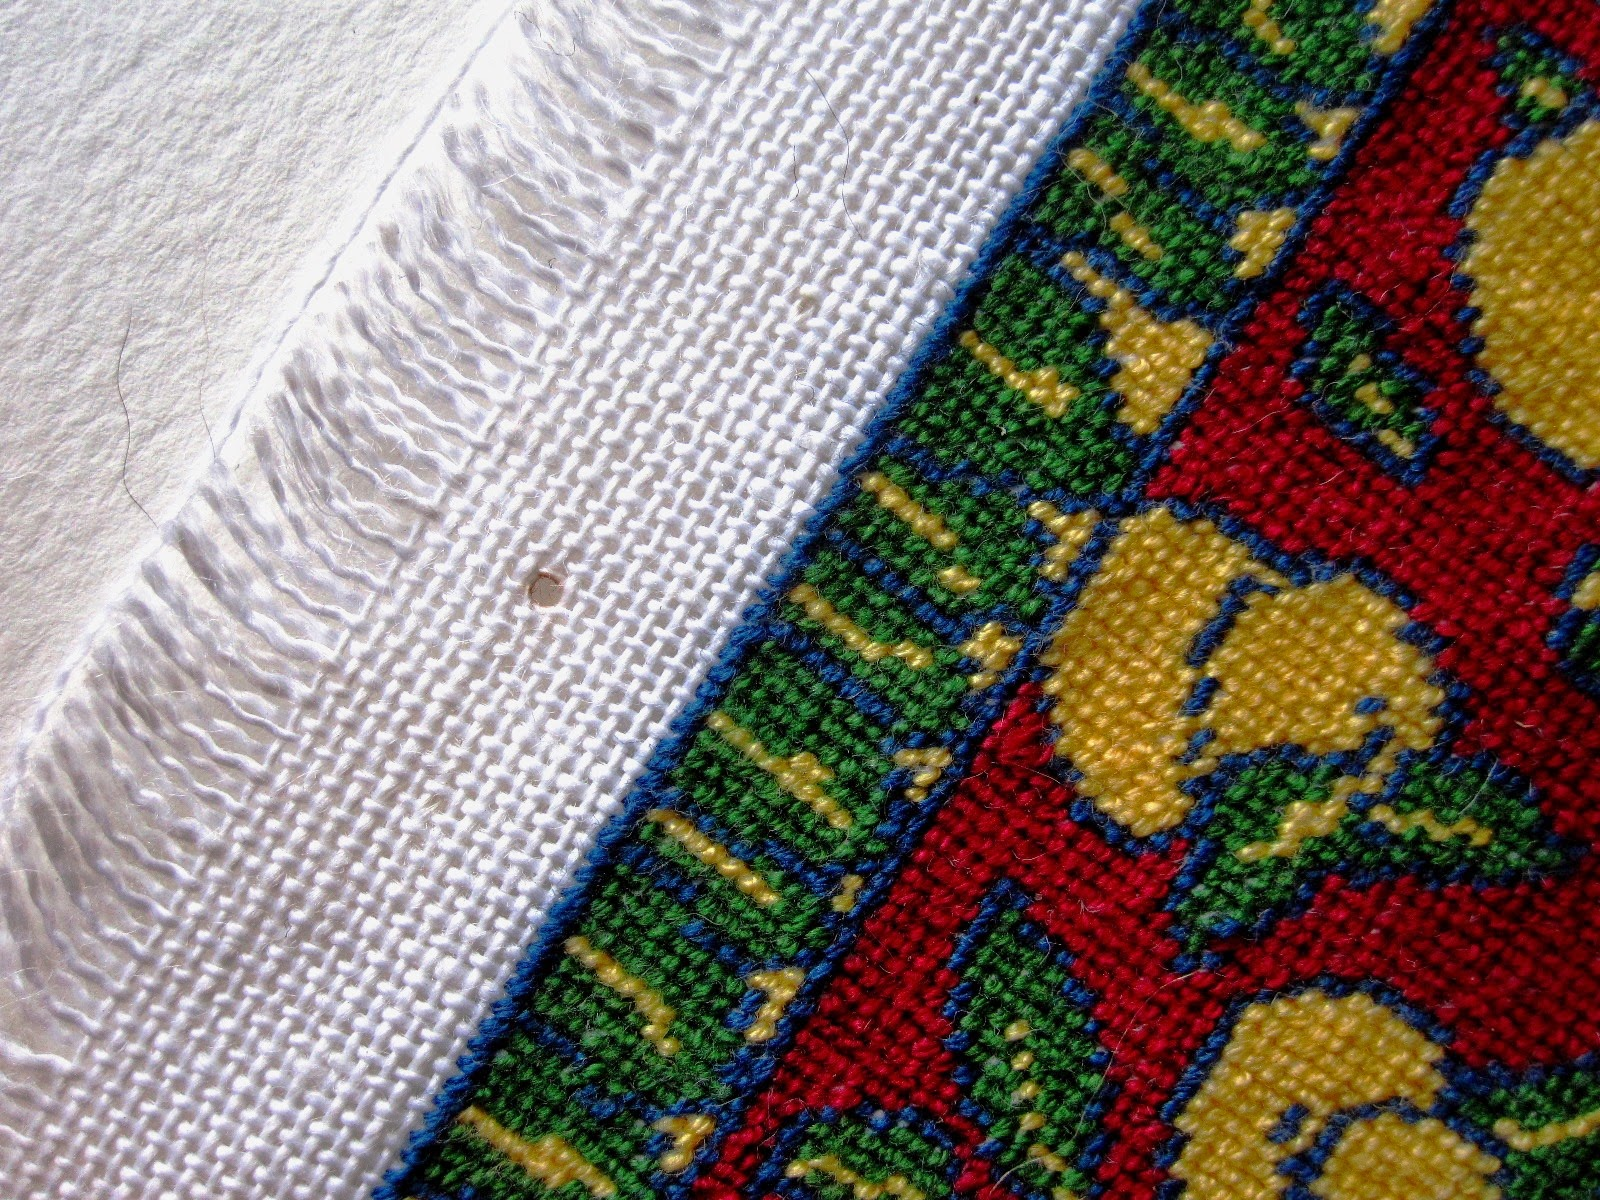 Edge of a piece of cross-stitch fabric with a dolls' house miniature rug stitched on it, showing pin marks from blocking.